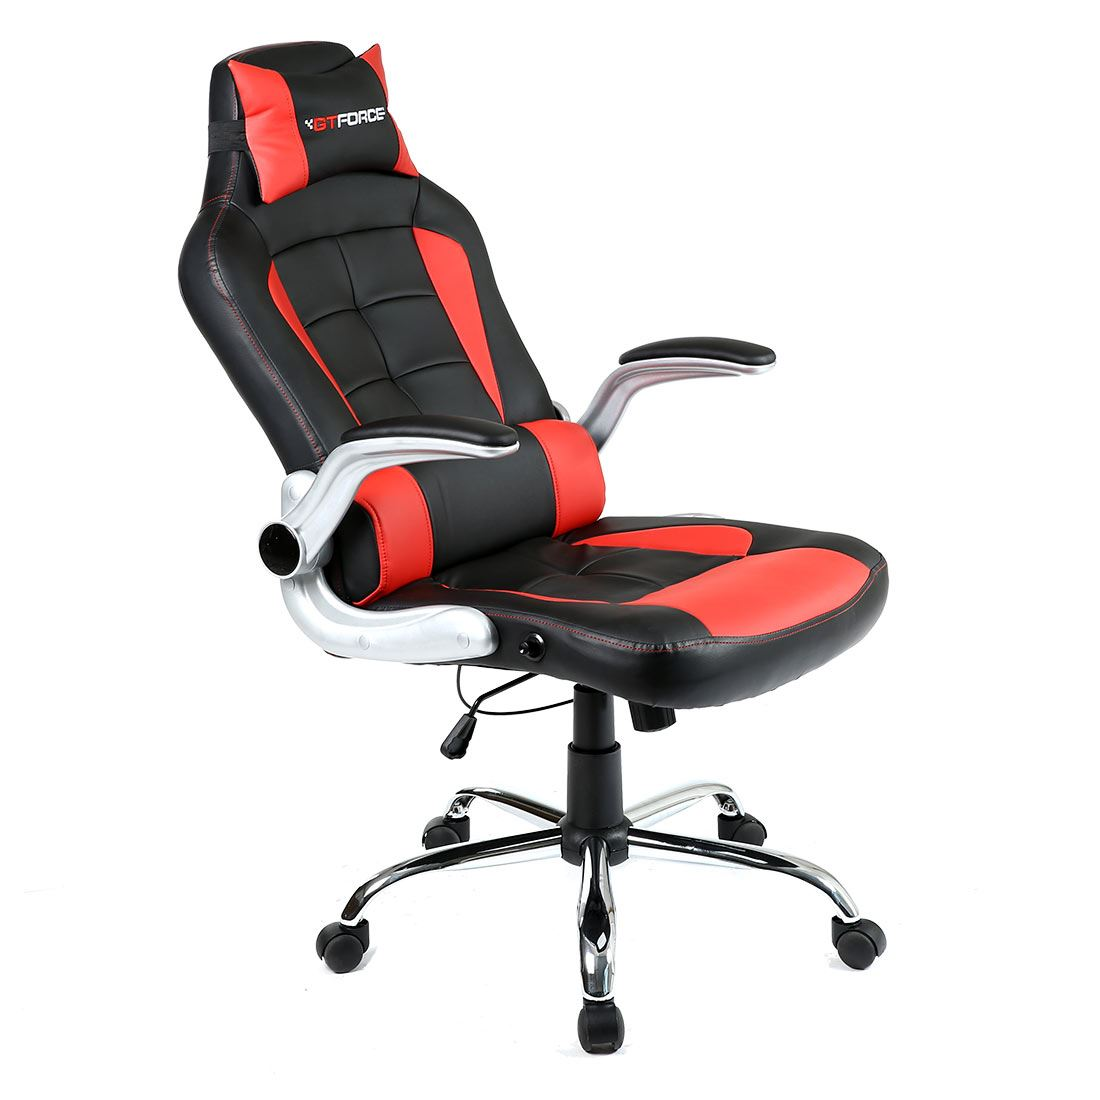 gtforce blaze reclining leather sports racing office desk chair gaming computer ebay. Black Bedroom Furniture Sets. Home Design Ideas